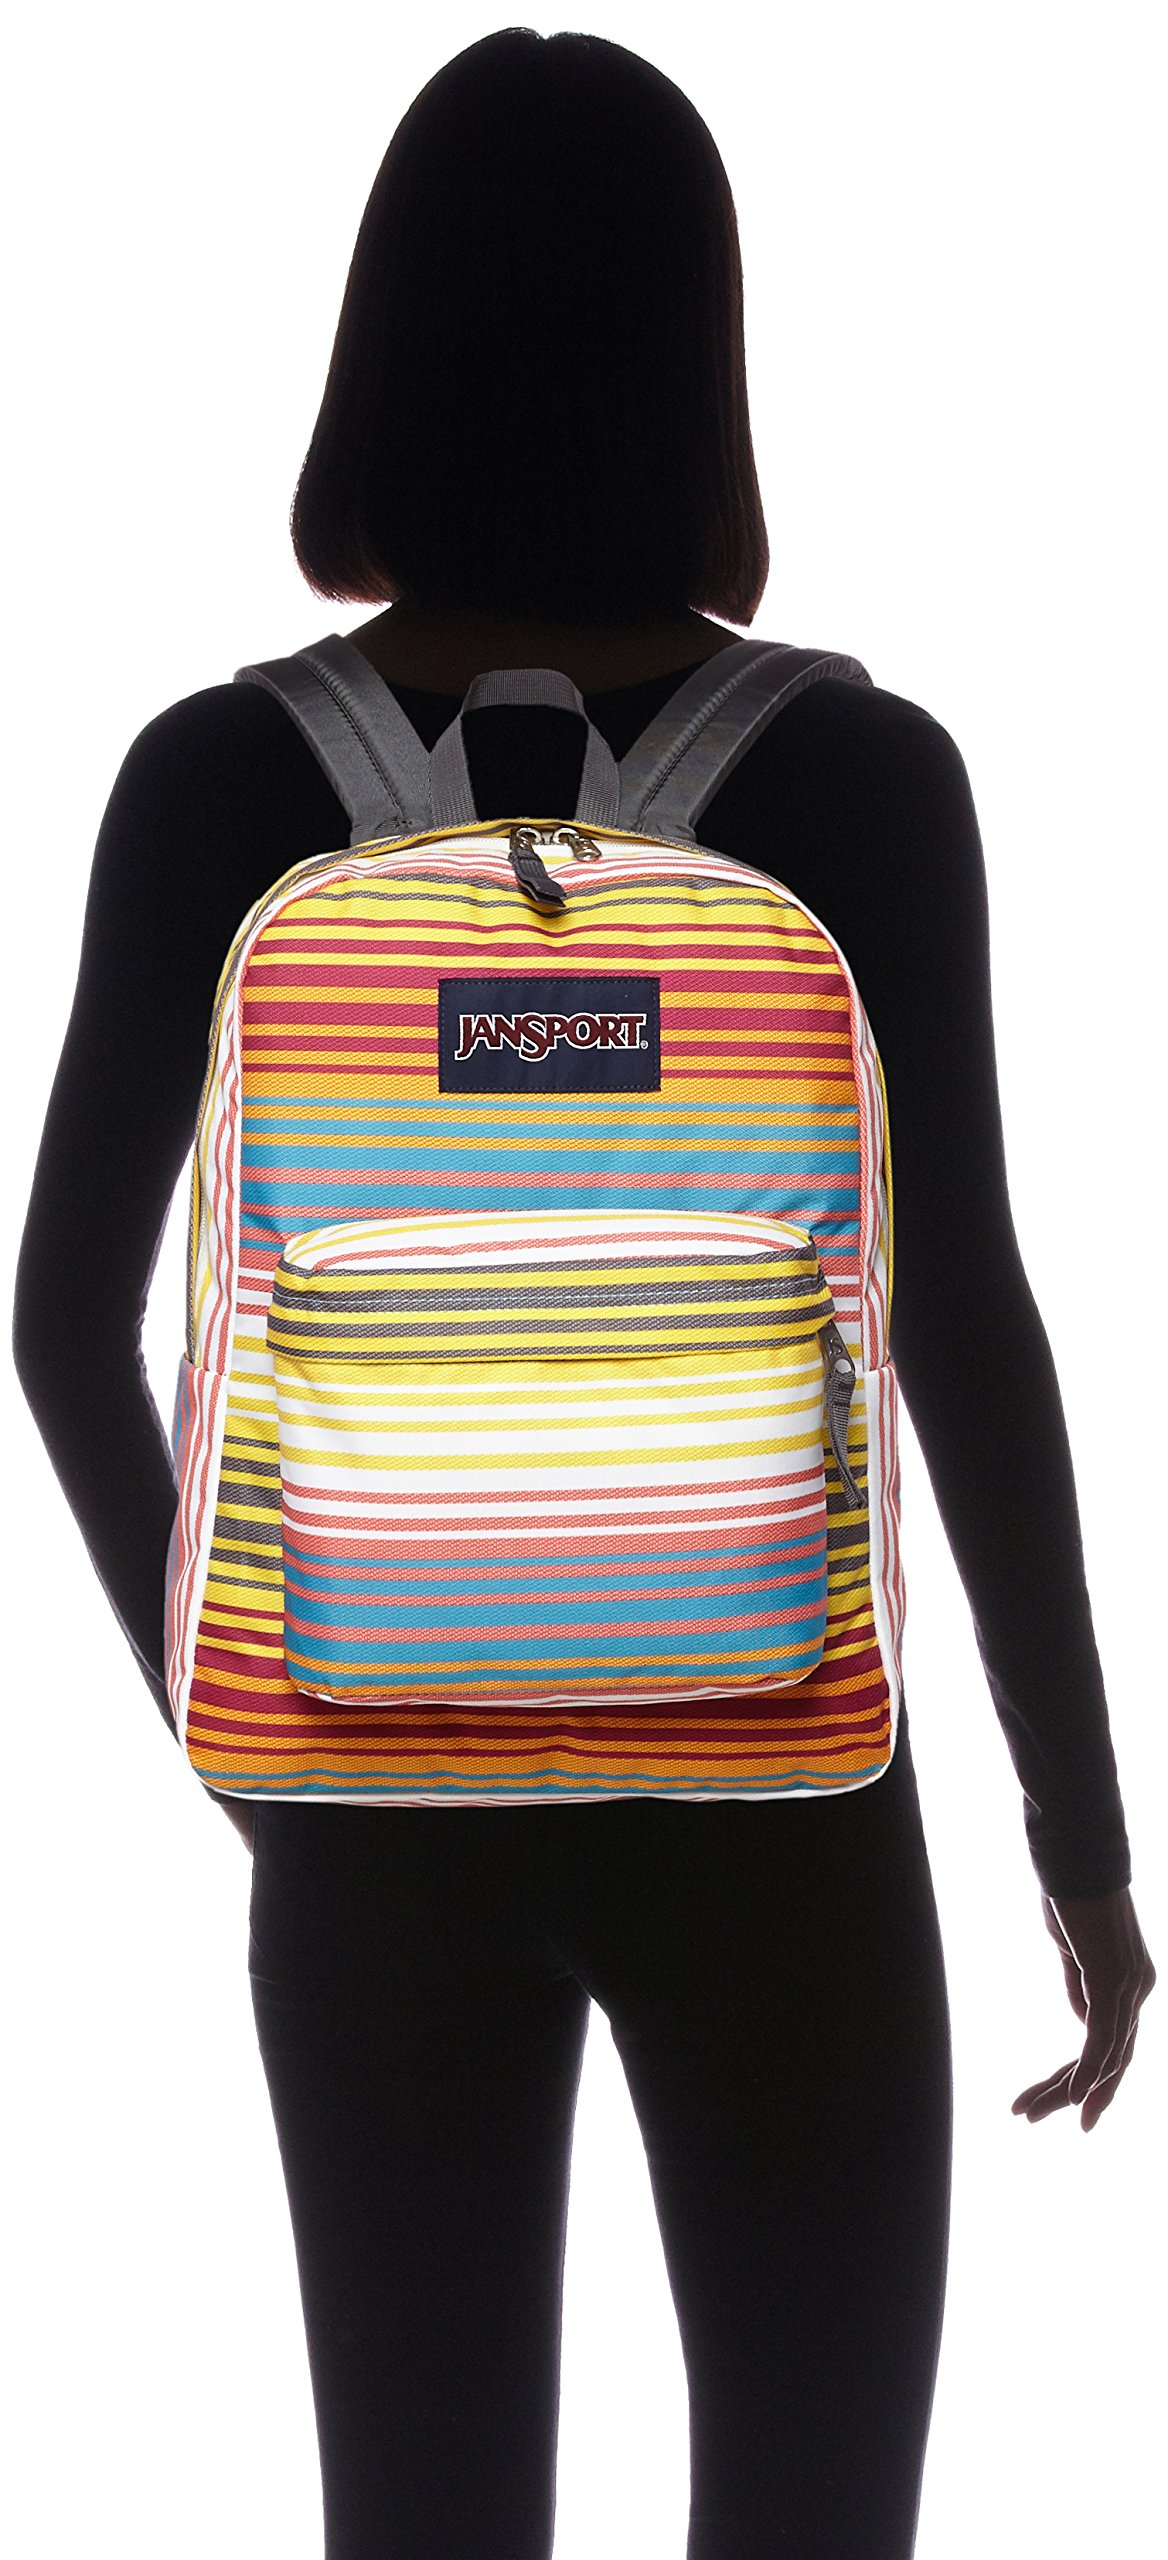 JanSport Classic SuperBreak Backpack, Multi Sunset Stripe by JanSport (Image #4)